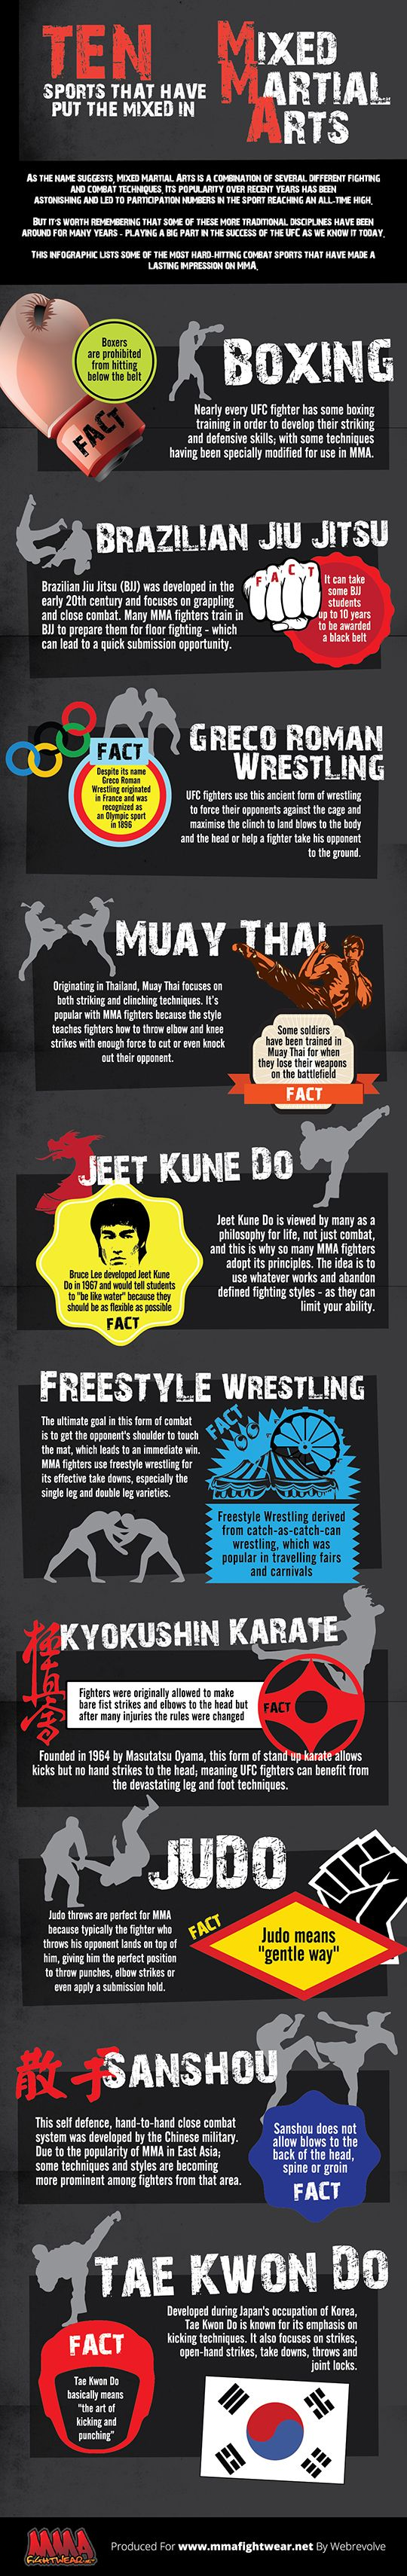 Best 25+ Martial arts ideas on Pinterest | MMA, What is krav maga ...